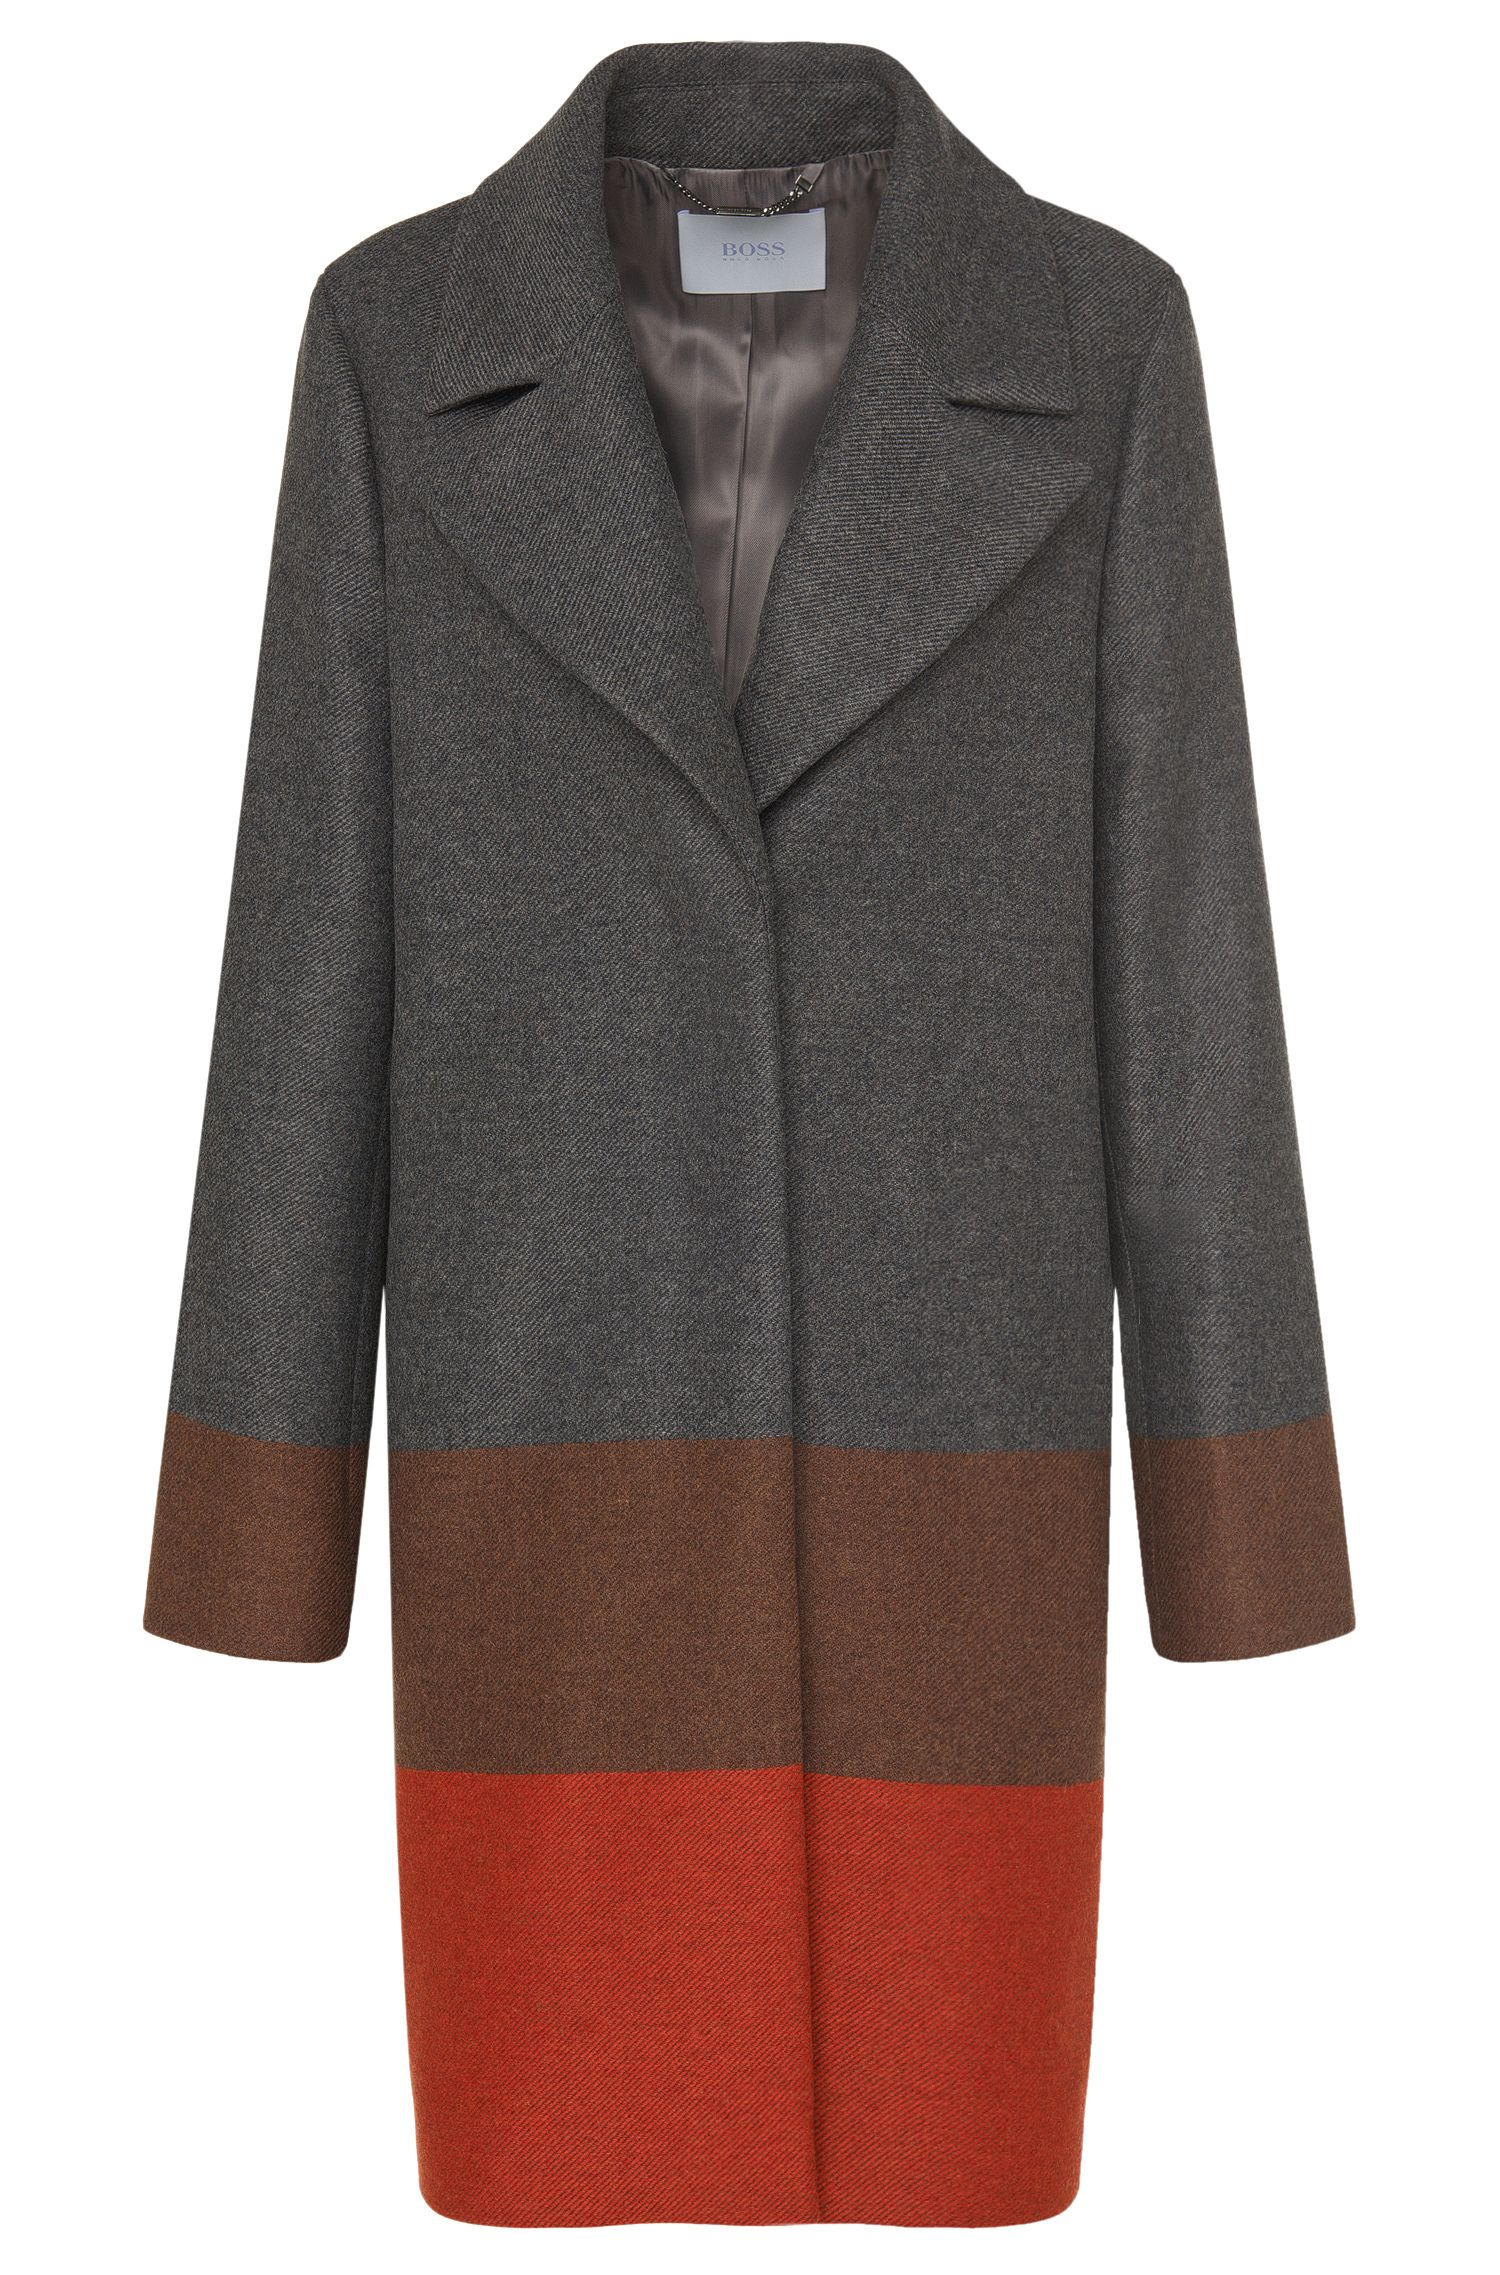 'Colorina' | Wool Cashmere Blend Colorblocked Coat